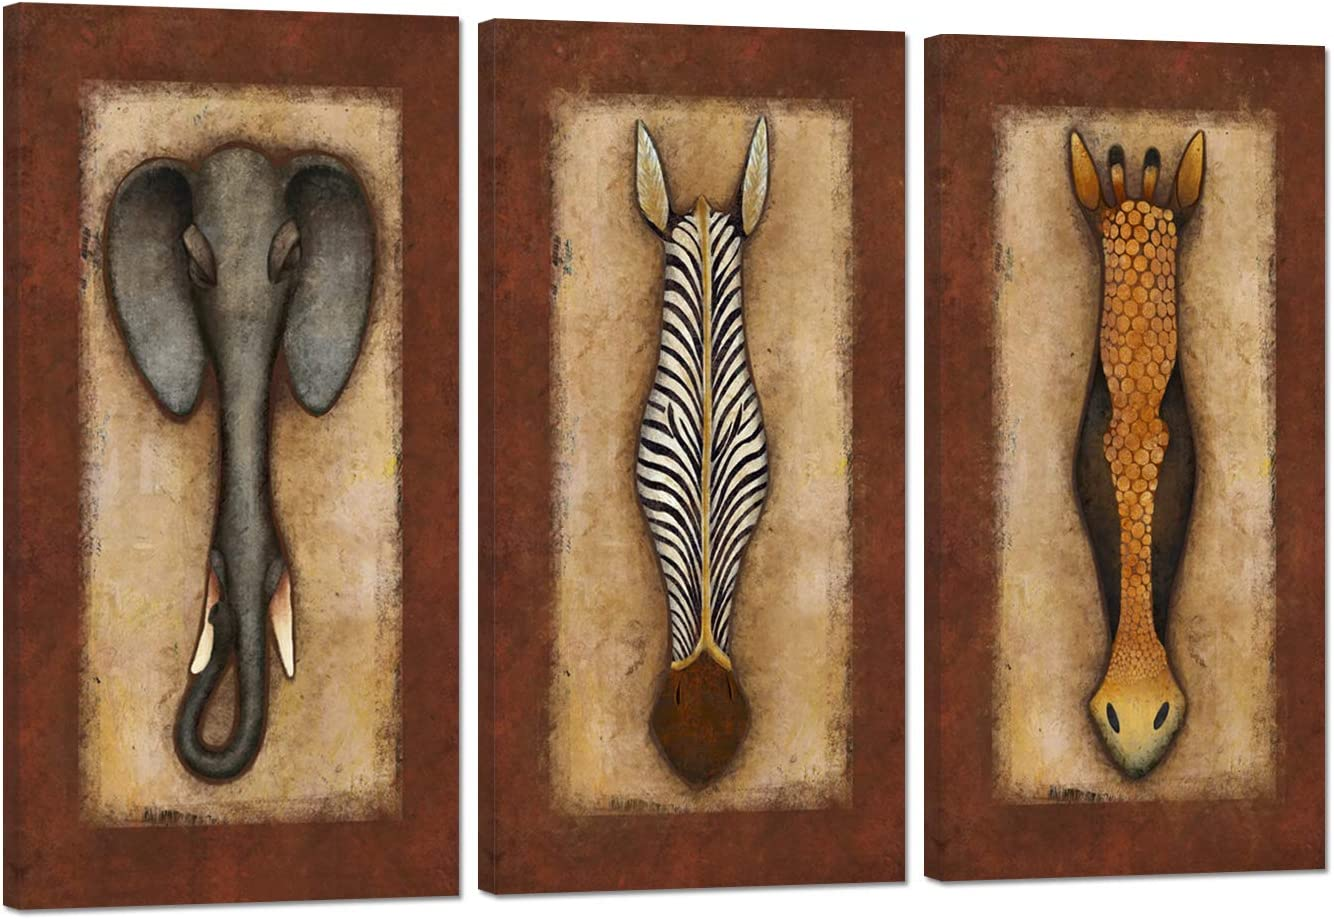 Zlove 3 Pieces Abstract African Animals Wall Art Giraffe Zebra and Elephant Vintage Africa Style Artwork Painting on Canvas for Living Room Decor Framed Ready to Hang 12x24inchx3pcs